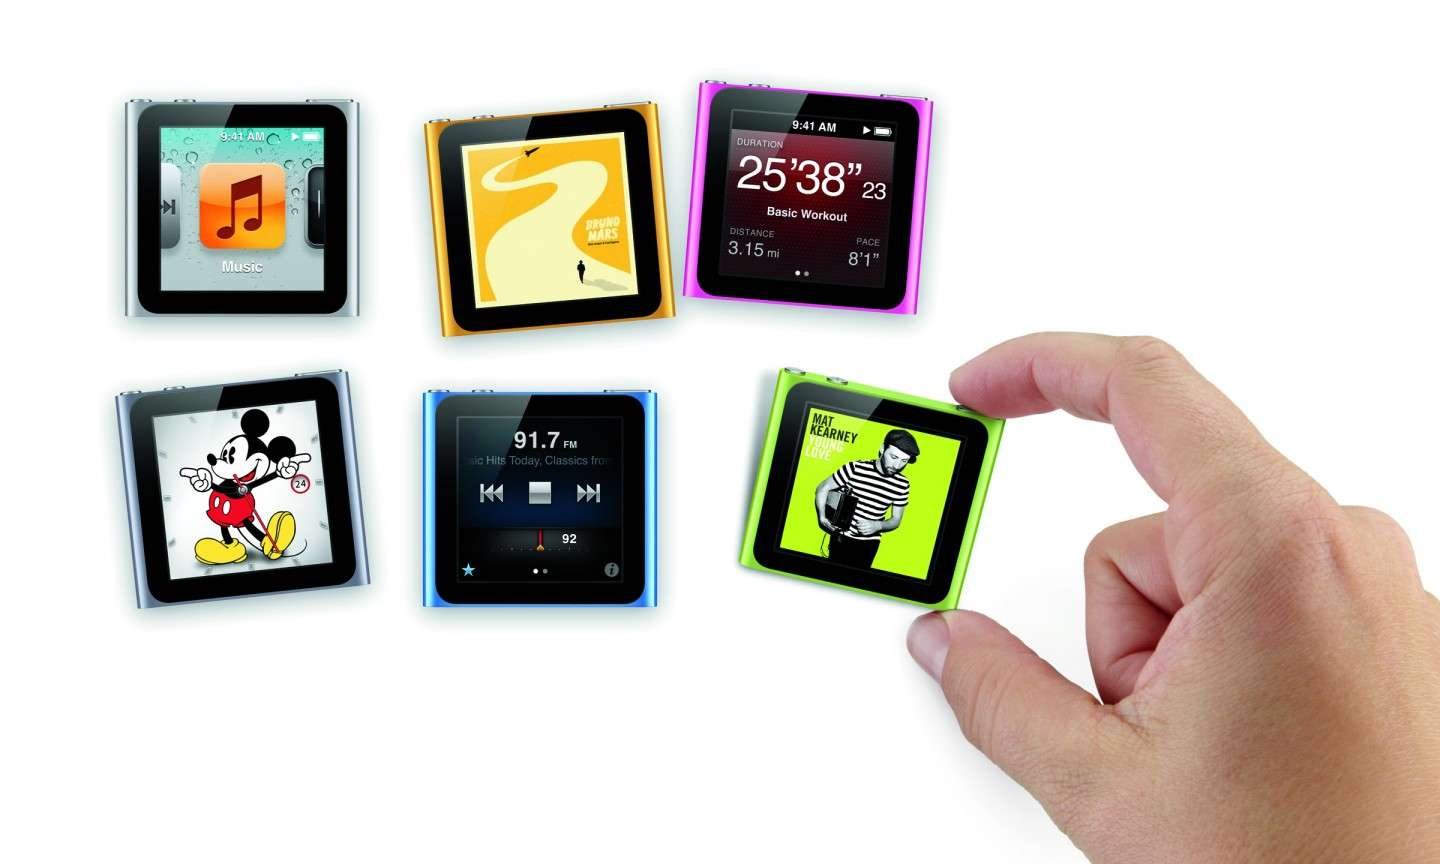 Regali hi tech per Natale 2014: iPod Nano